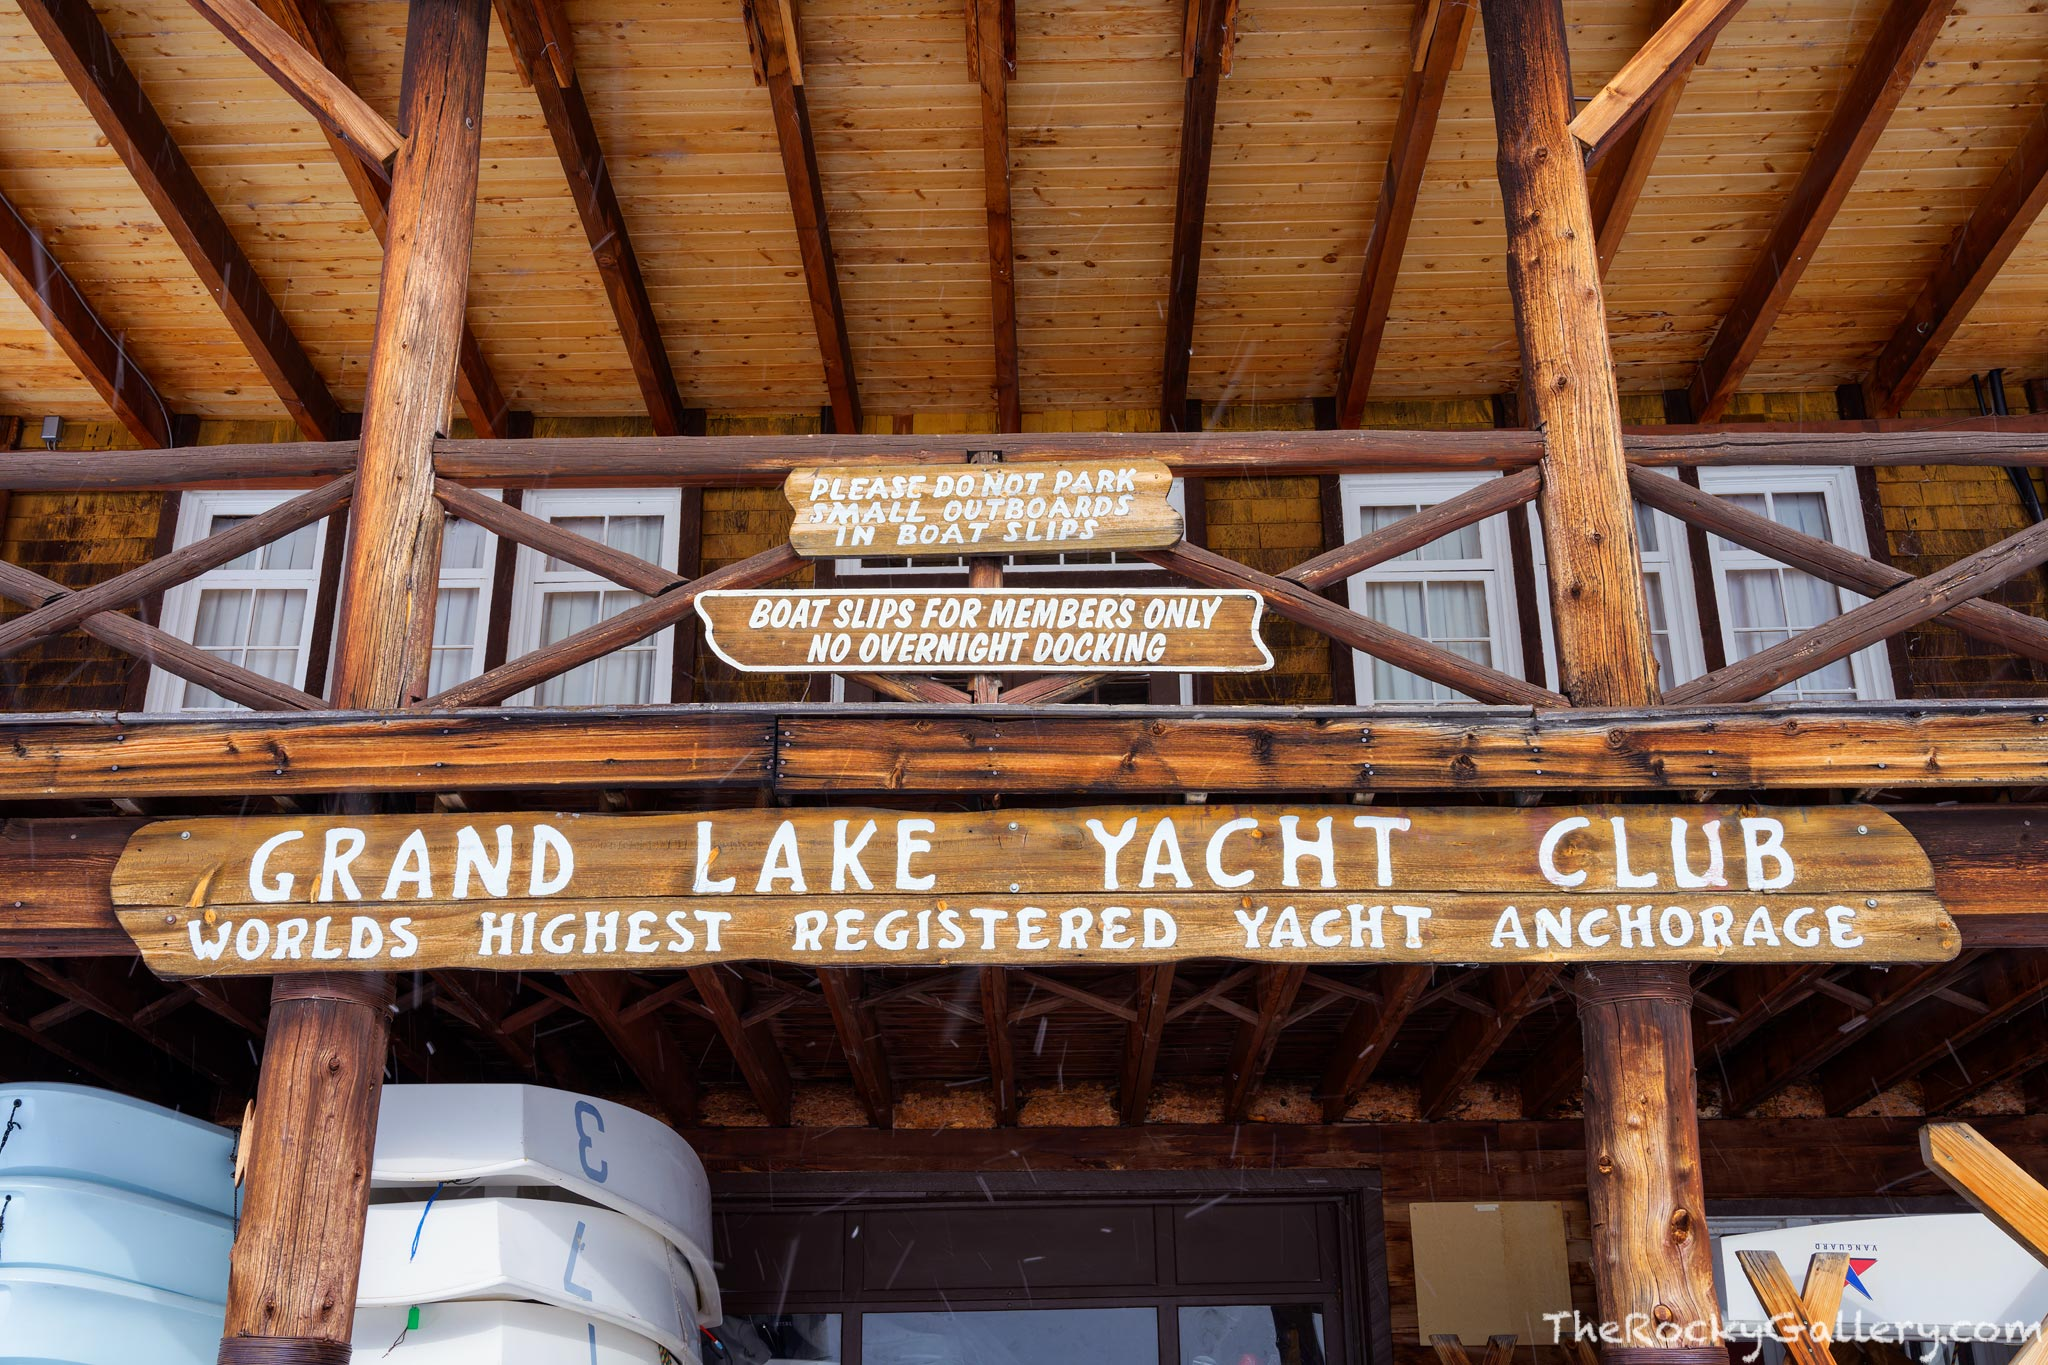 Grand Lake,Colorado,Grand Lake Yacht Club,Worlds Highest Yacht Club,Grand County,Winter,January,Building,Hand of Man,Woodwork,Boats,RMNP,Rocky Mountain National Park, photo